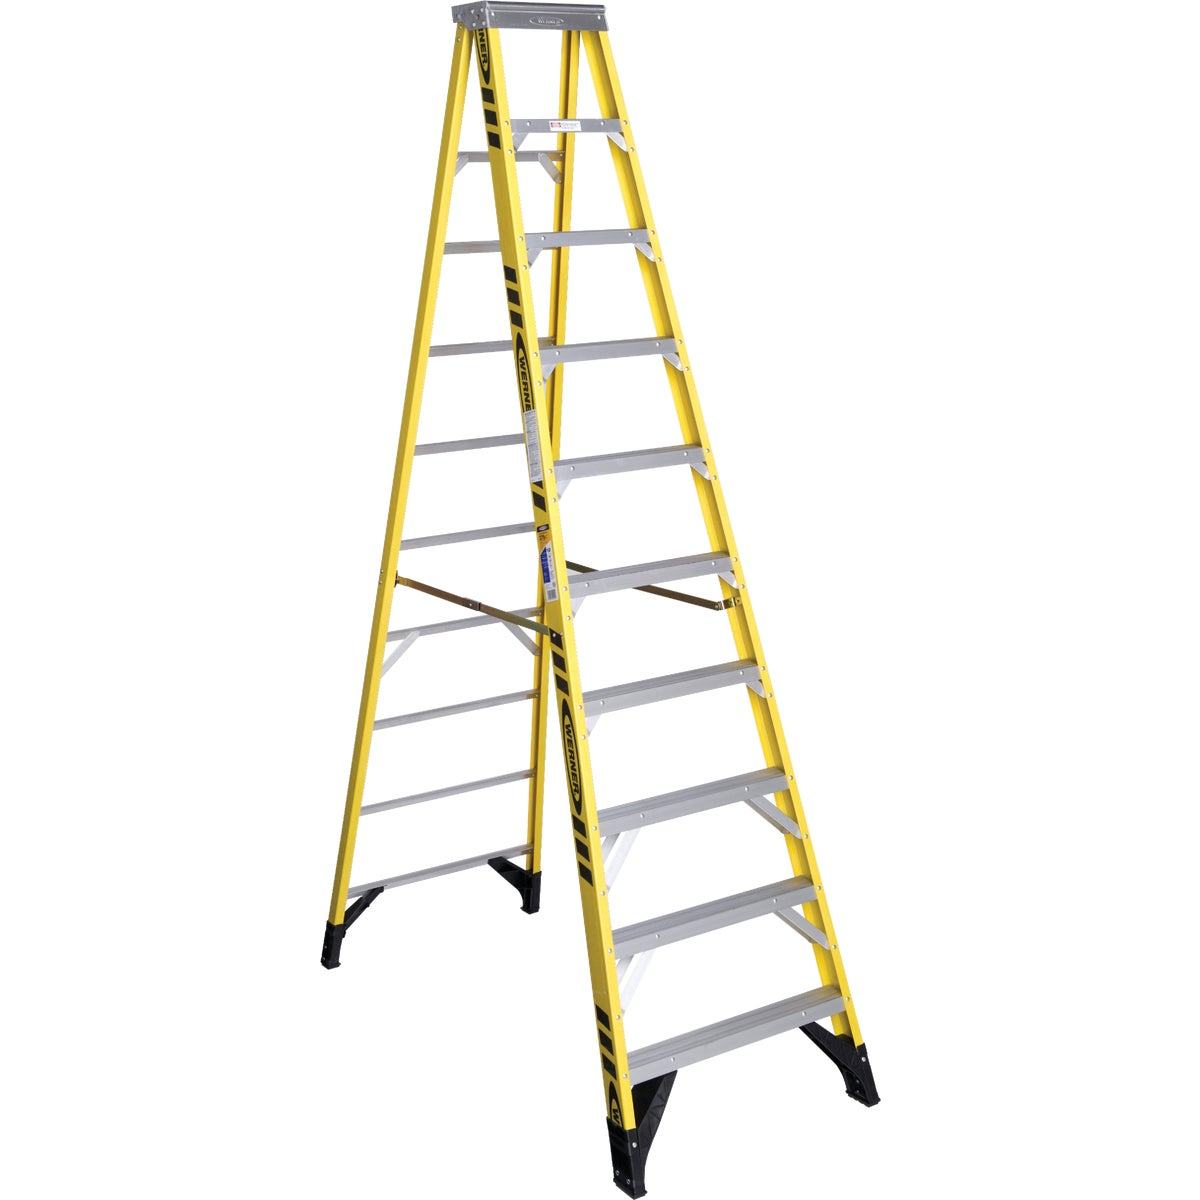 T-1AA 10'FBGL STEPLADDER - 7310 by Werner Ladder